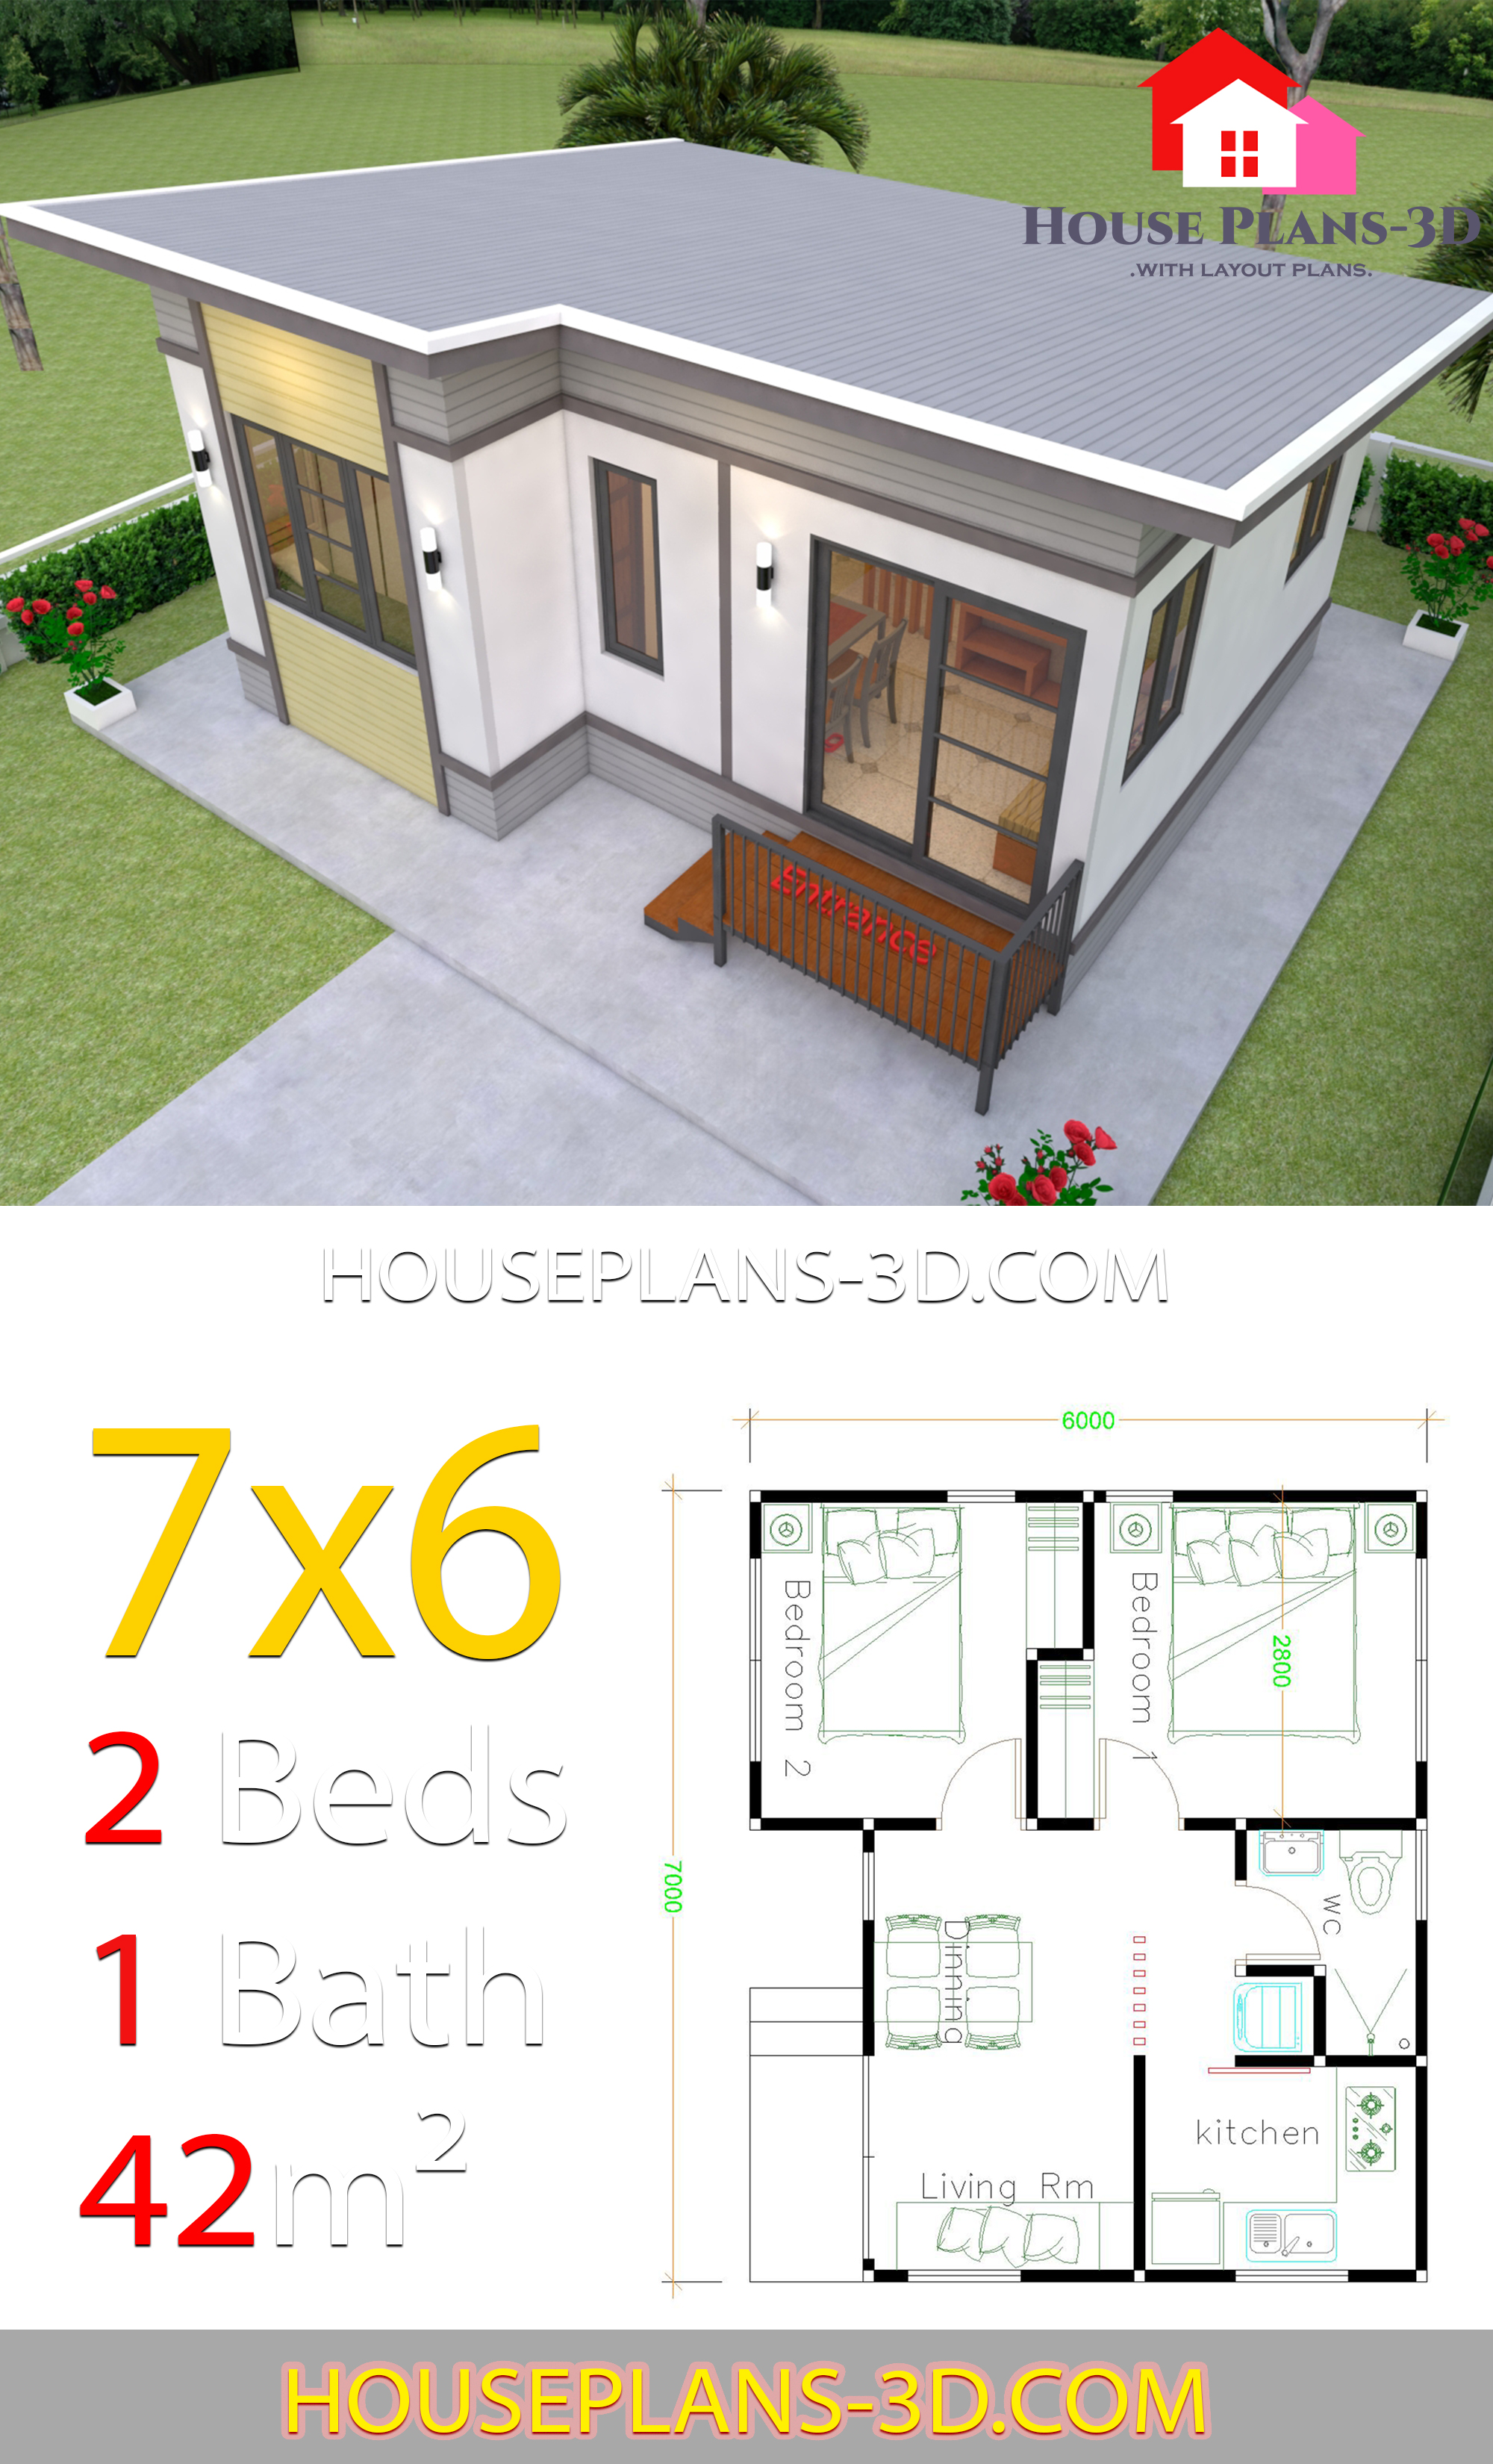 Small House plans 7x6 with 2 Bedrooms on very small house plans, modern house plans, bungalow house plans, small cottage house plans, kitchen house plans, luxury cottage house plans, two bedroom handicap house plans, sq ft. house plans, simple house plans, cute small house plans, 1bedroom house plans, 1 bedroom plans, country house plans, loft house plans, duplex house plans, 14 bedroom house plans, 5 bedroom house plans, north east facing house plans, floor plans, great room house plans,